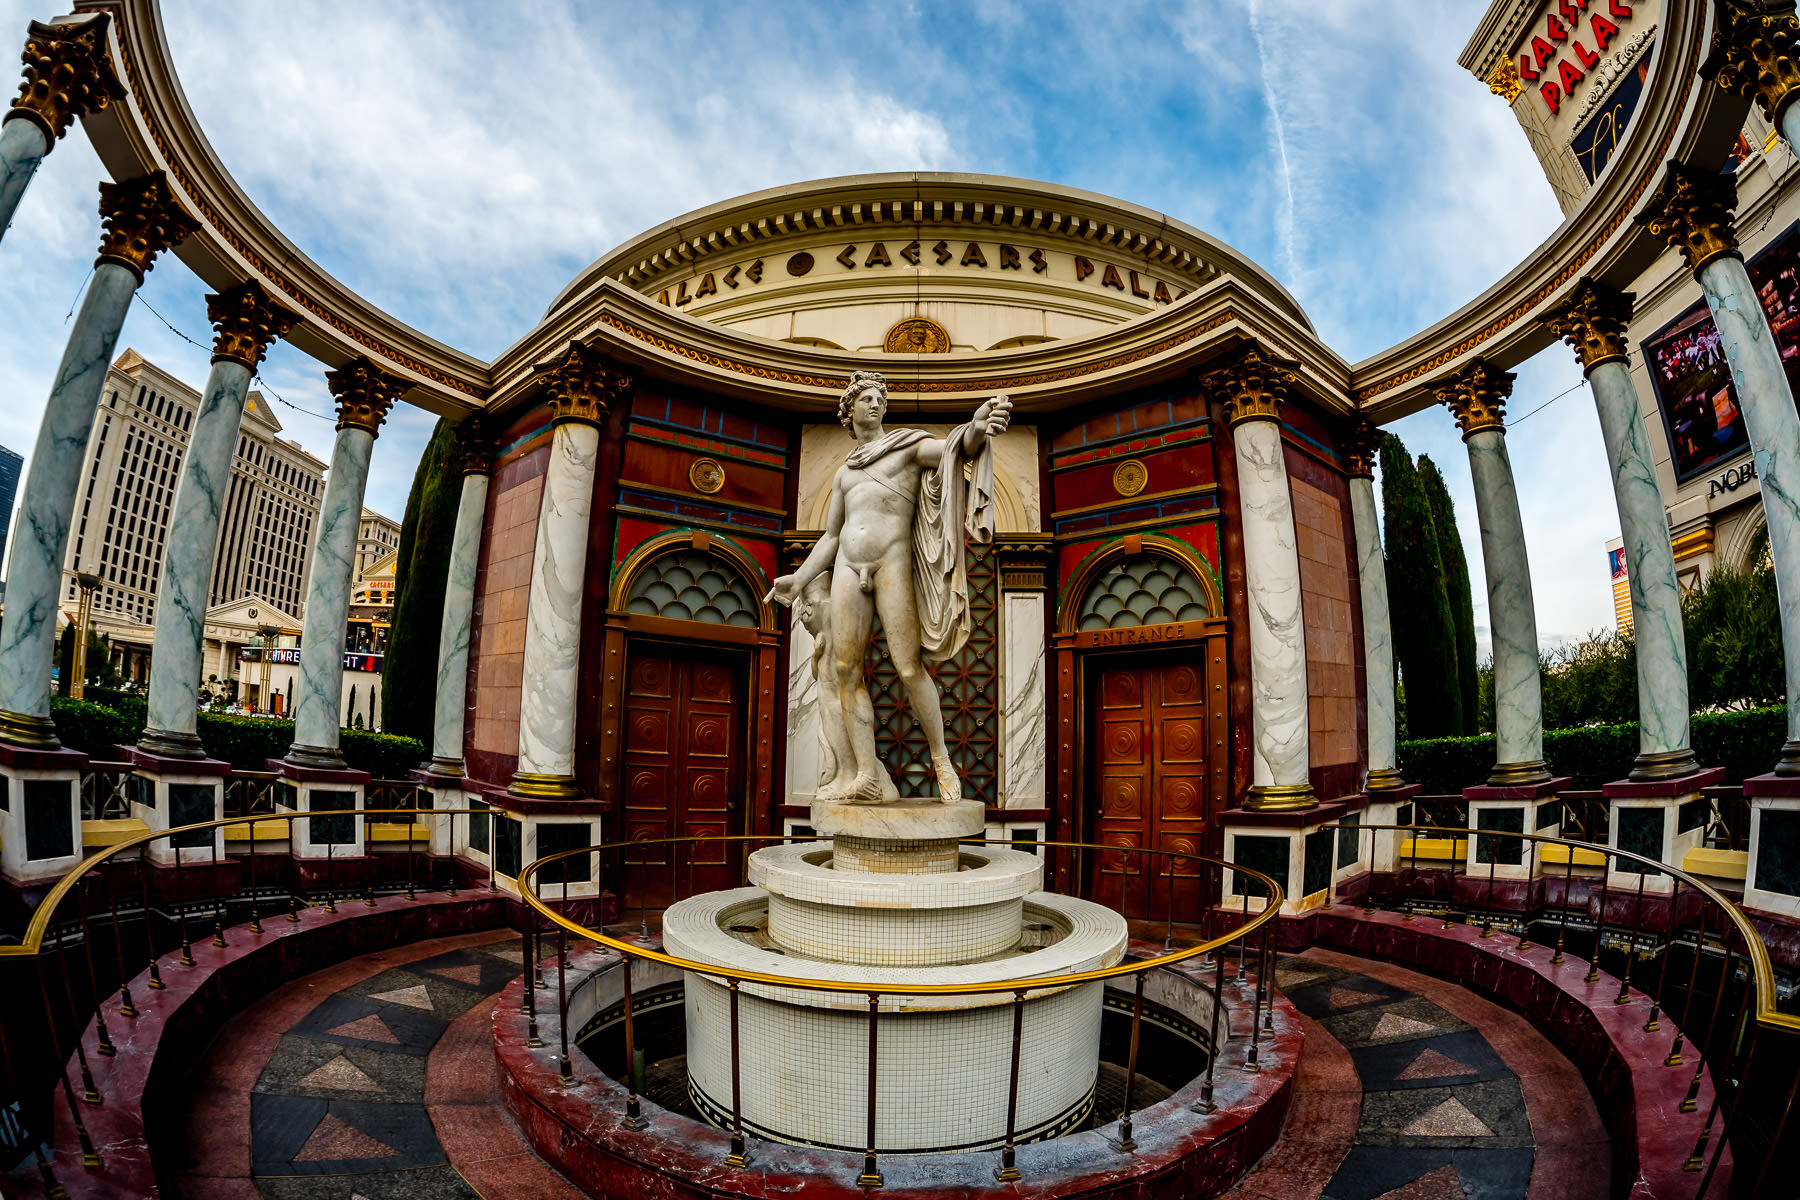 A classical statue outside of Caesars Palace, Las Vegas.